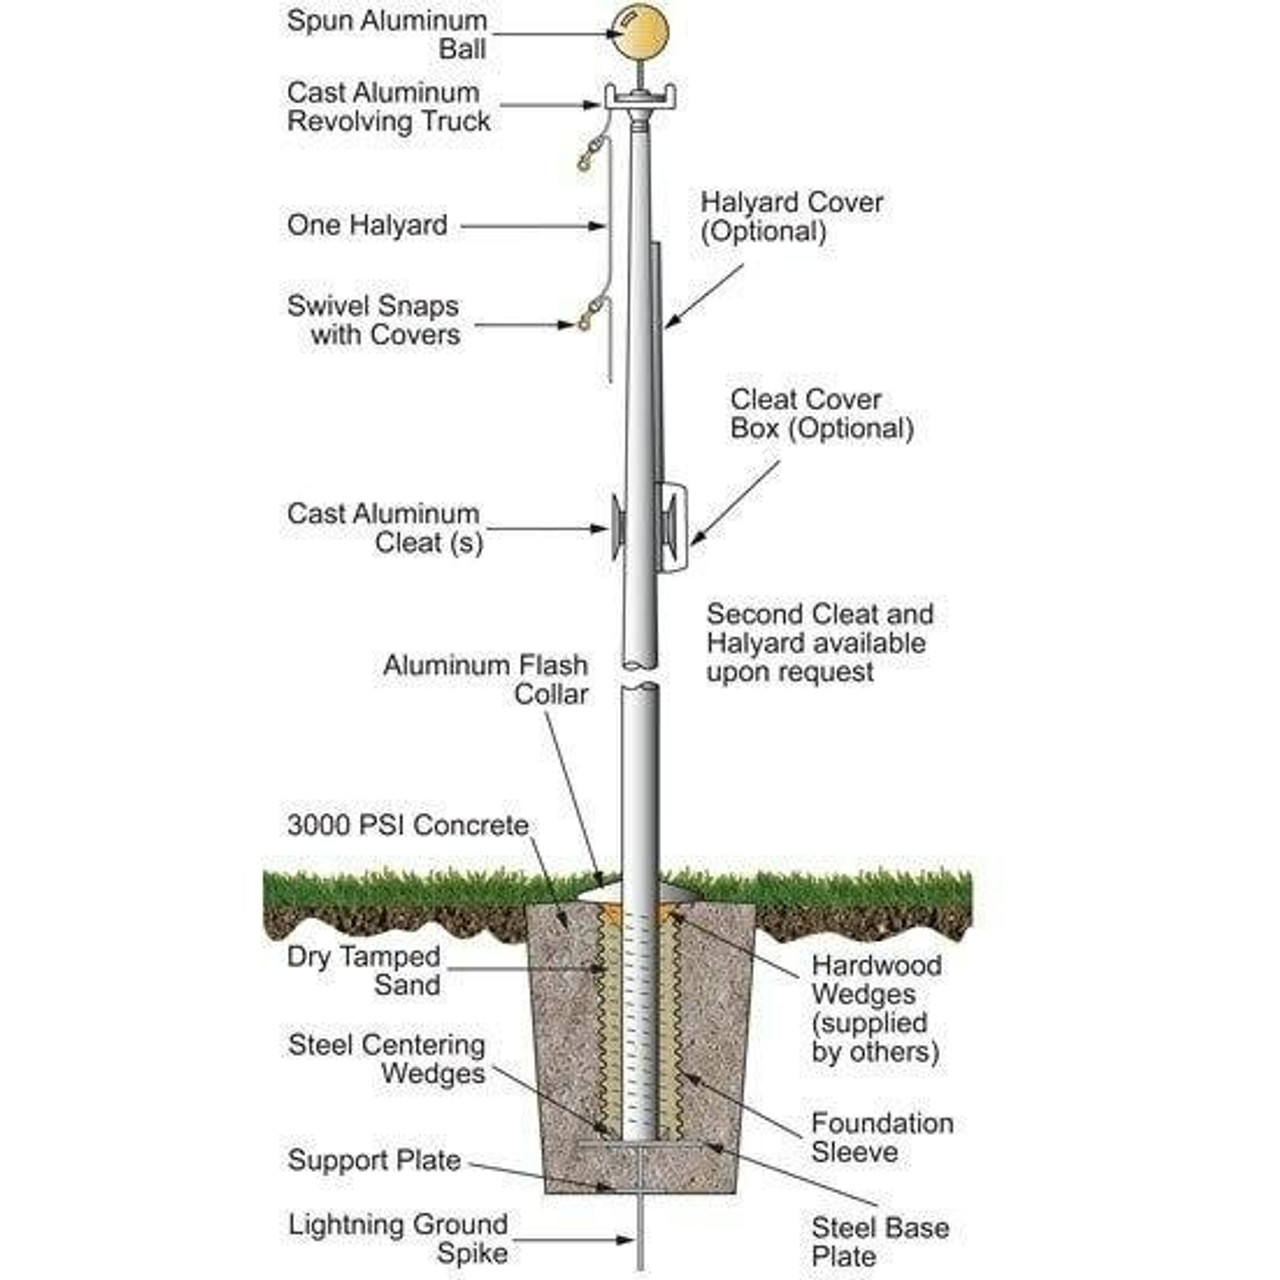 This illustration depicts the flagpole components included and required for the installation of this in-ground, 20 ft. flagpole.